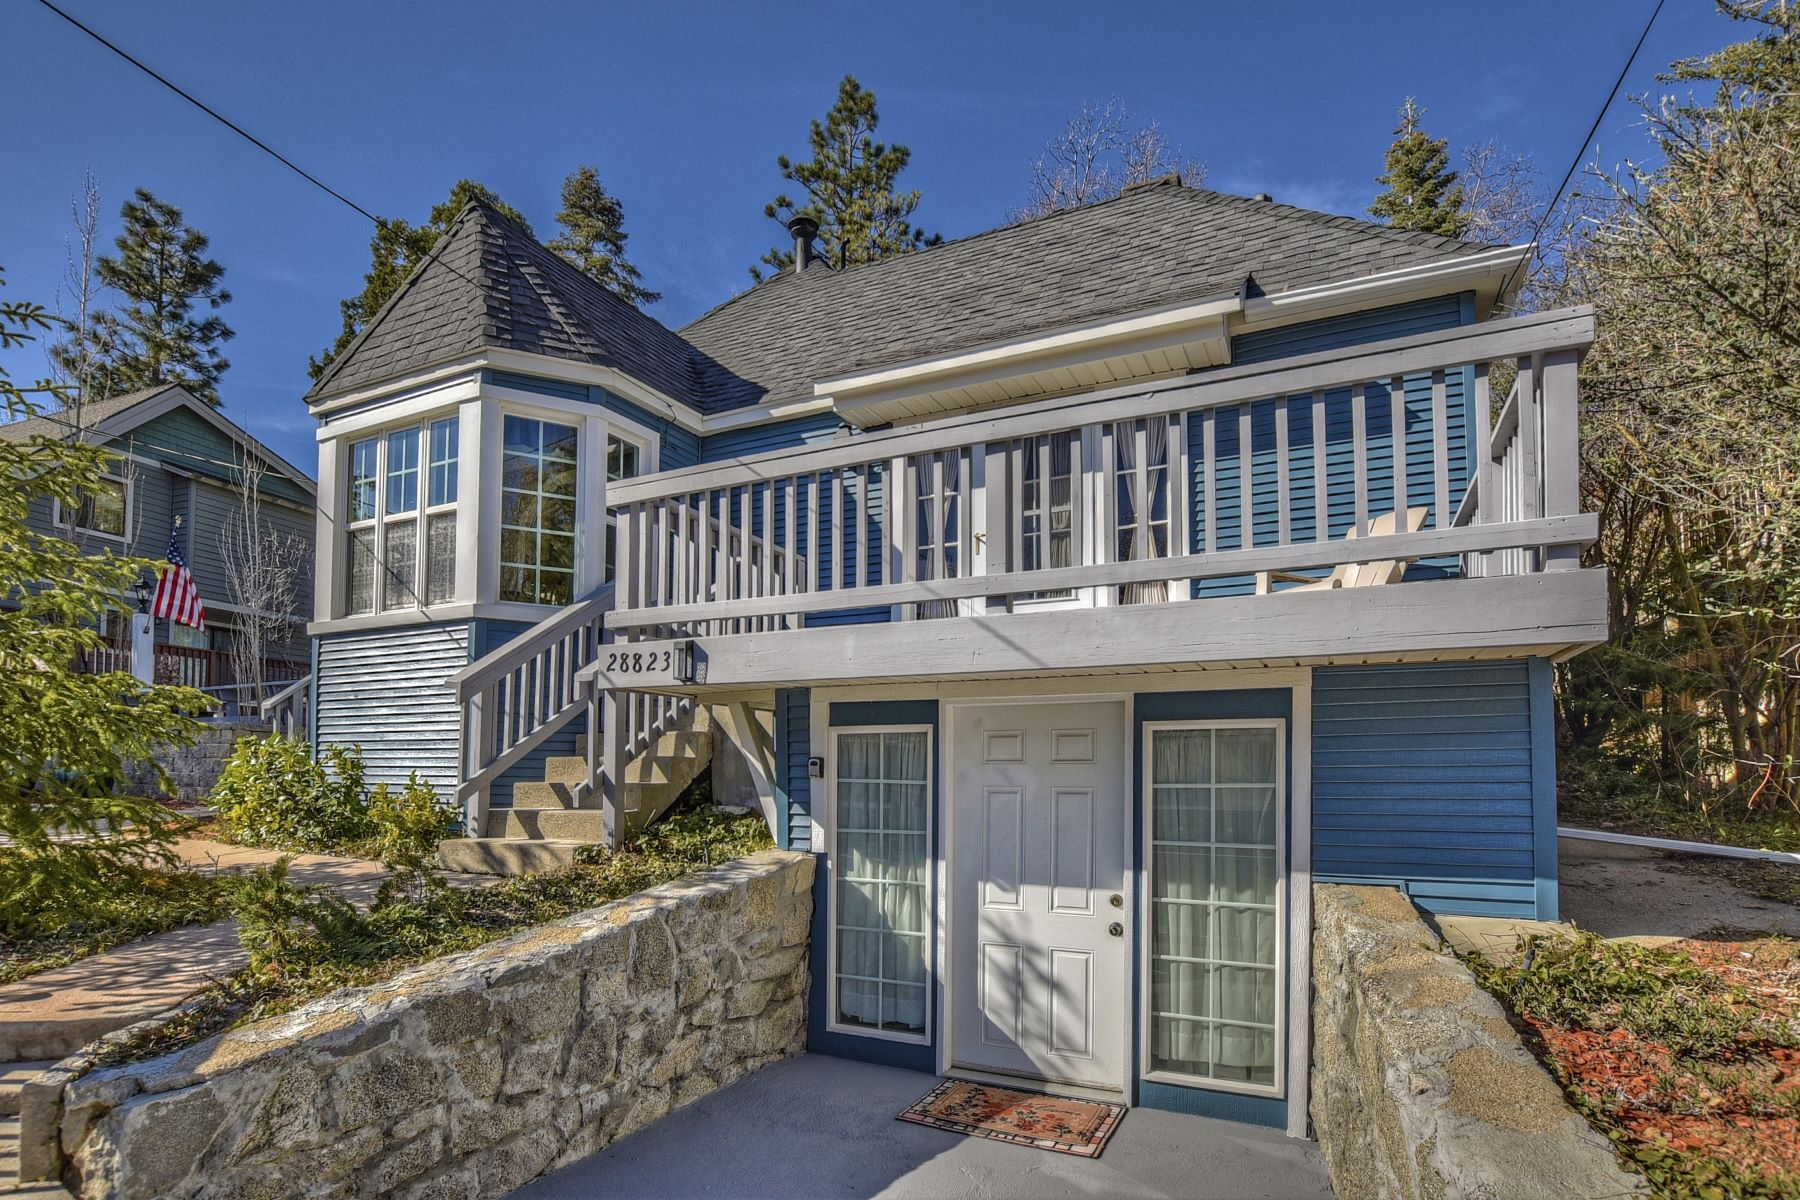 Single Family Homes for Sale at 28823 Cedar Drive, Lake Arrowhead, California 92352 28823 Cedar Drive Lake Arrowhead, California 92352 United States